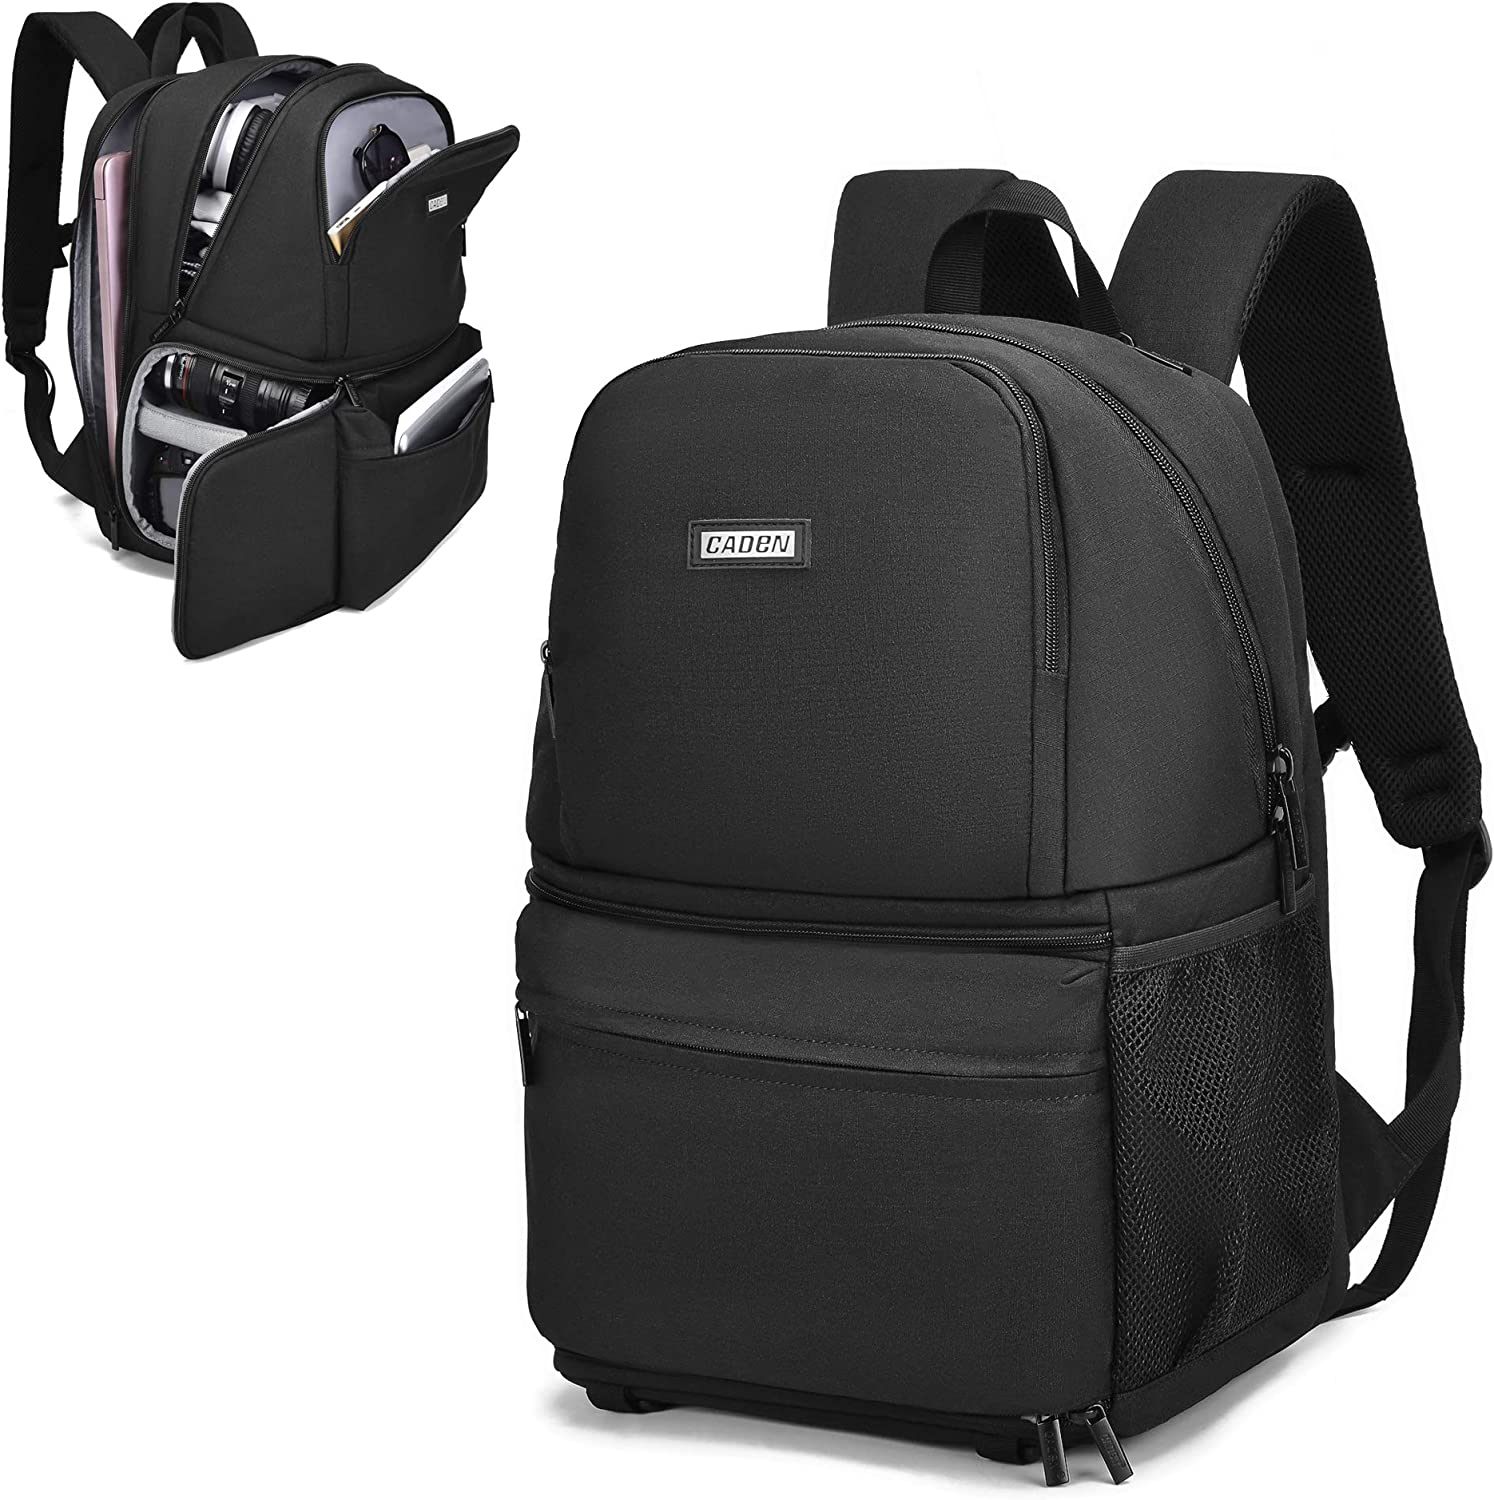 CADeN Camera Backpack Waterproof Camera Bag Large, Camera Case with 13 Inch Laptop Compartment Compatible for Sony Canon Nikon Camera and Lens Tripod Accessories